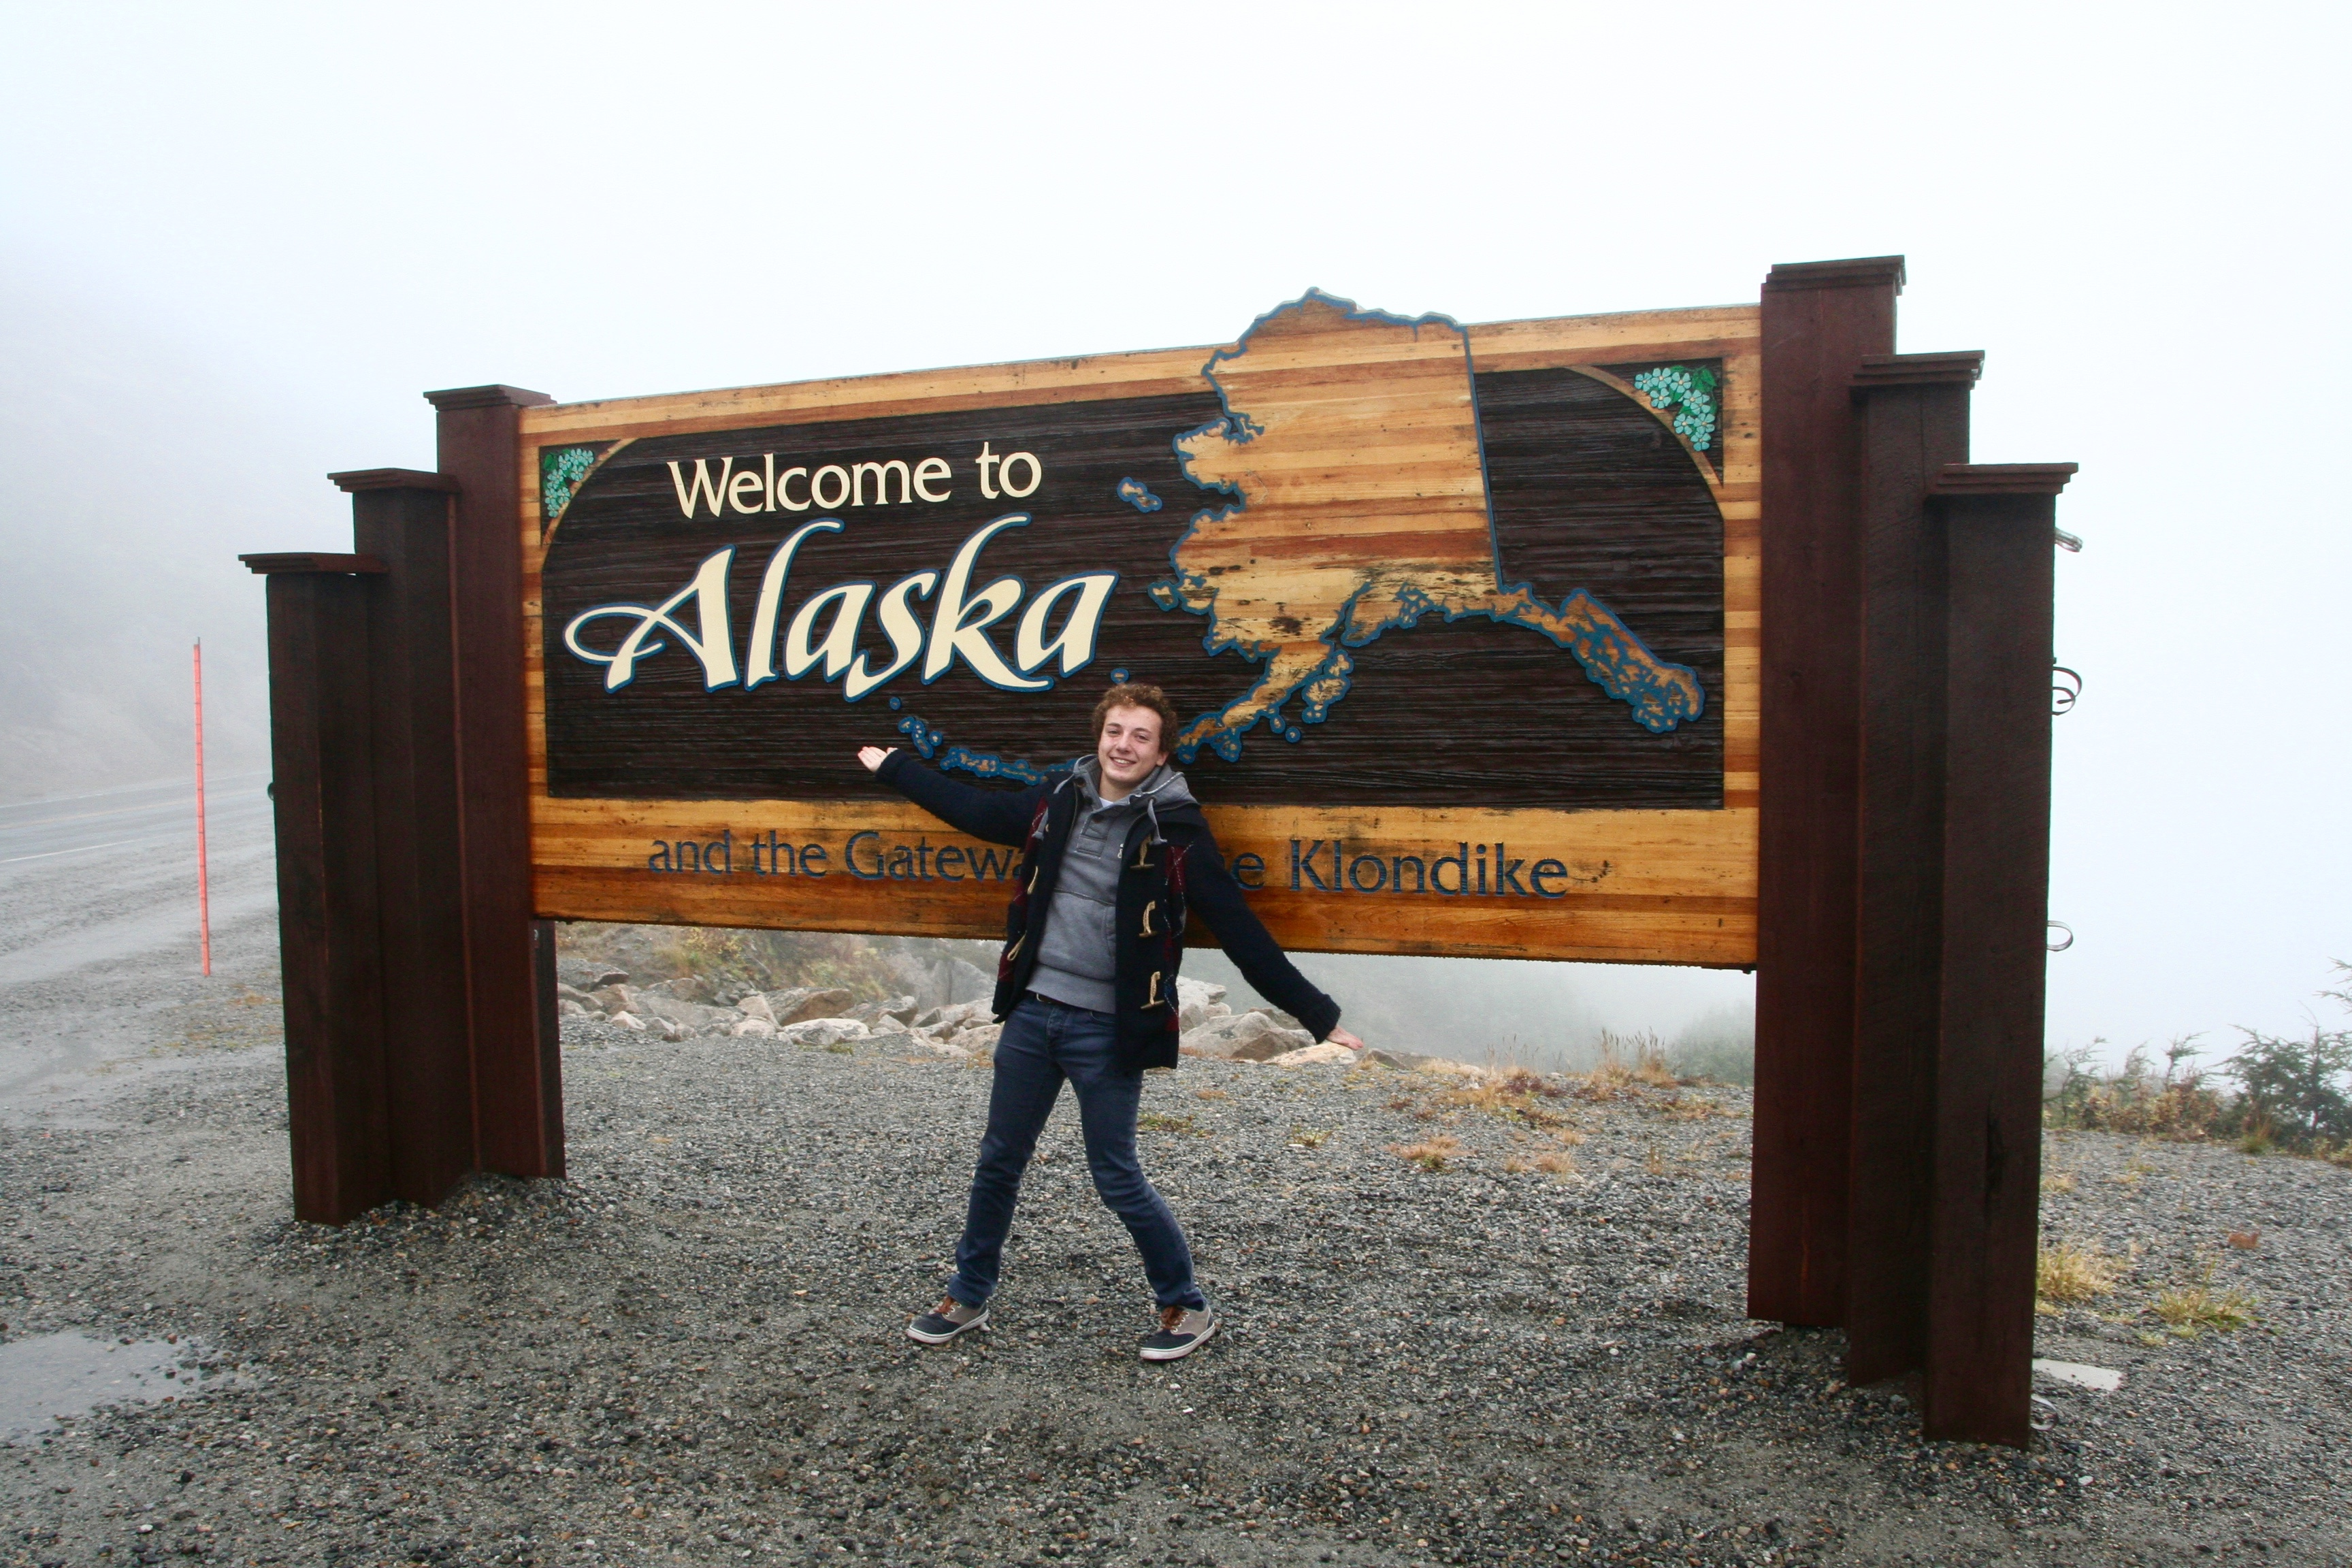 participant standing in front of sign saying Welcome to Alaska